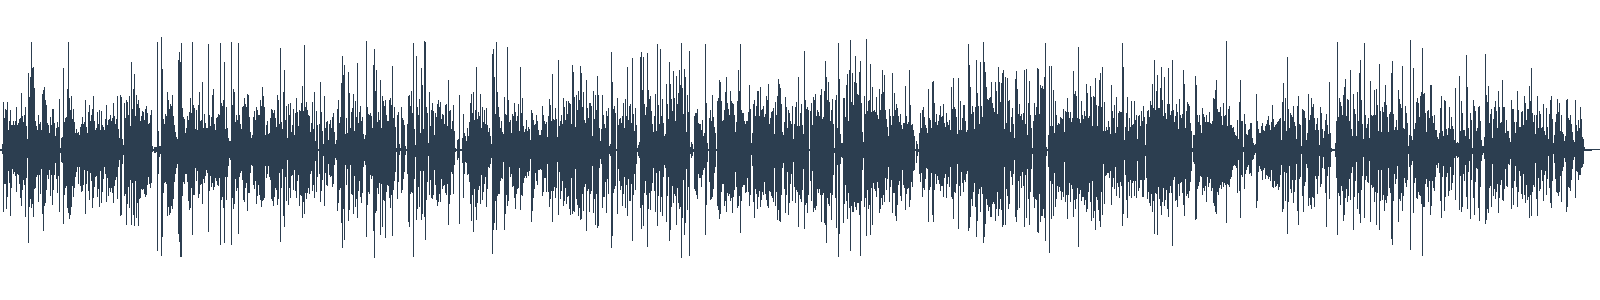 Plajko waveform